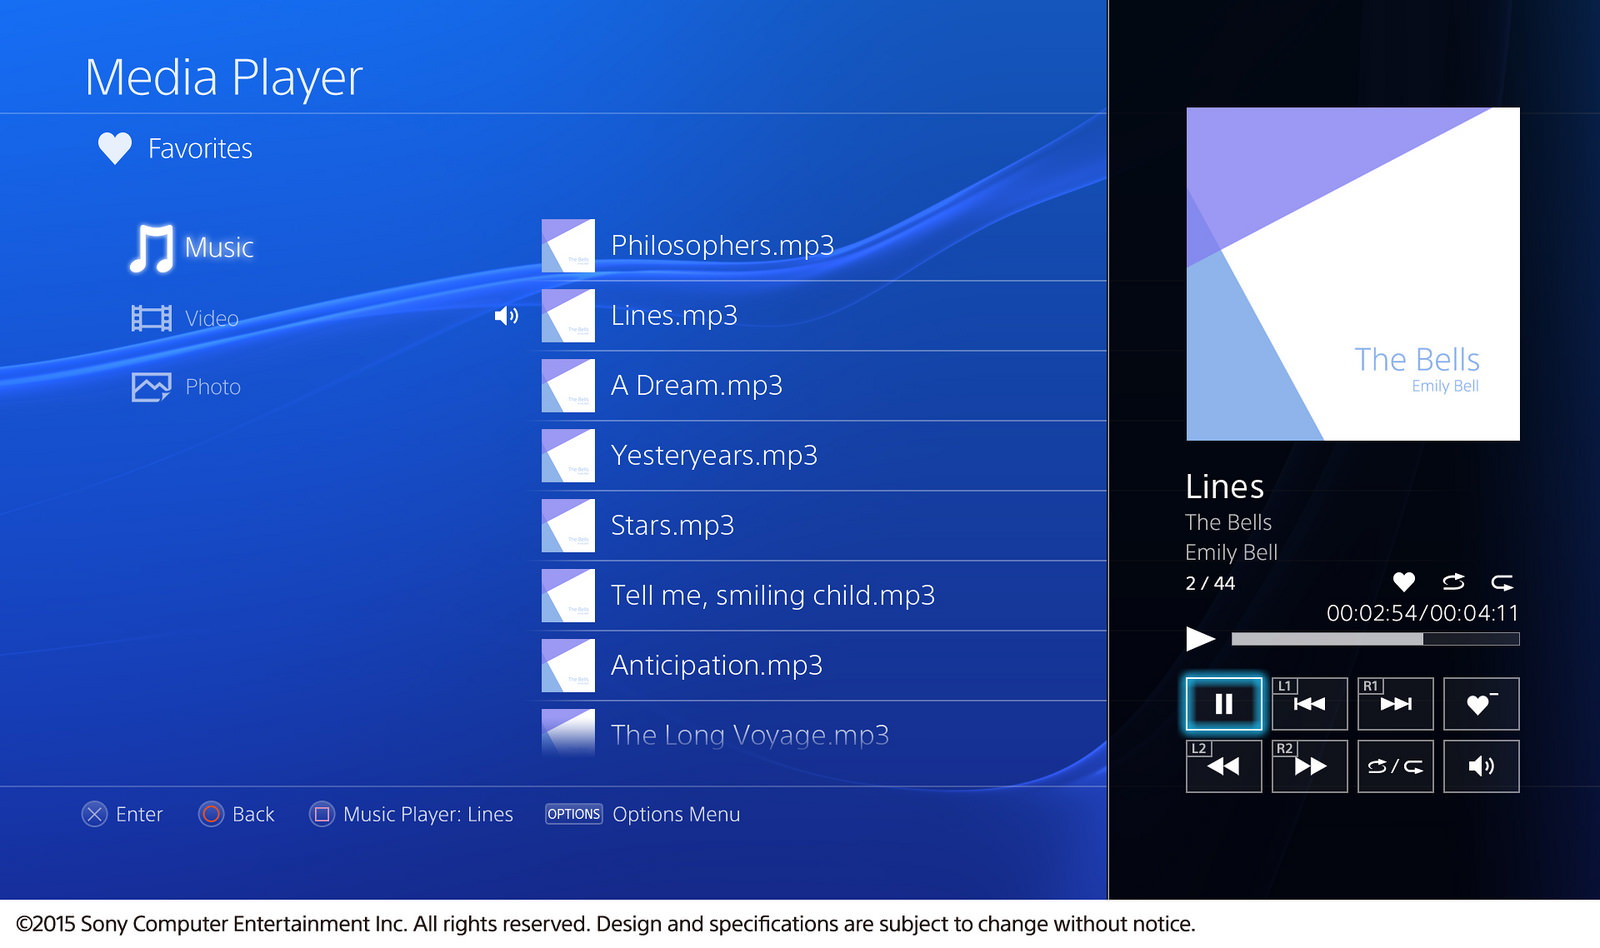 Sony PS4 Media Player media list screenshot courtesy of Sony Computer Entertainment